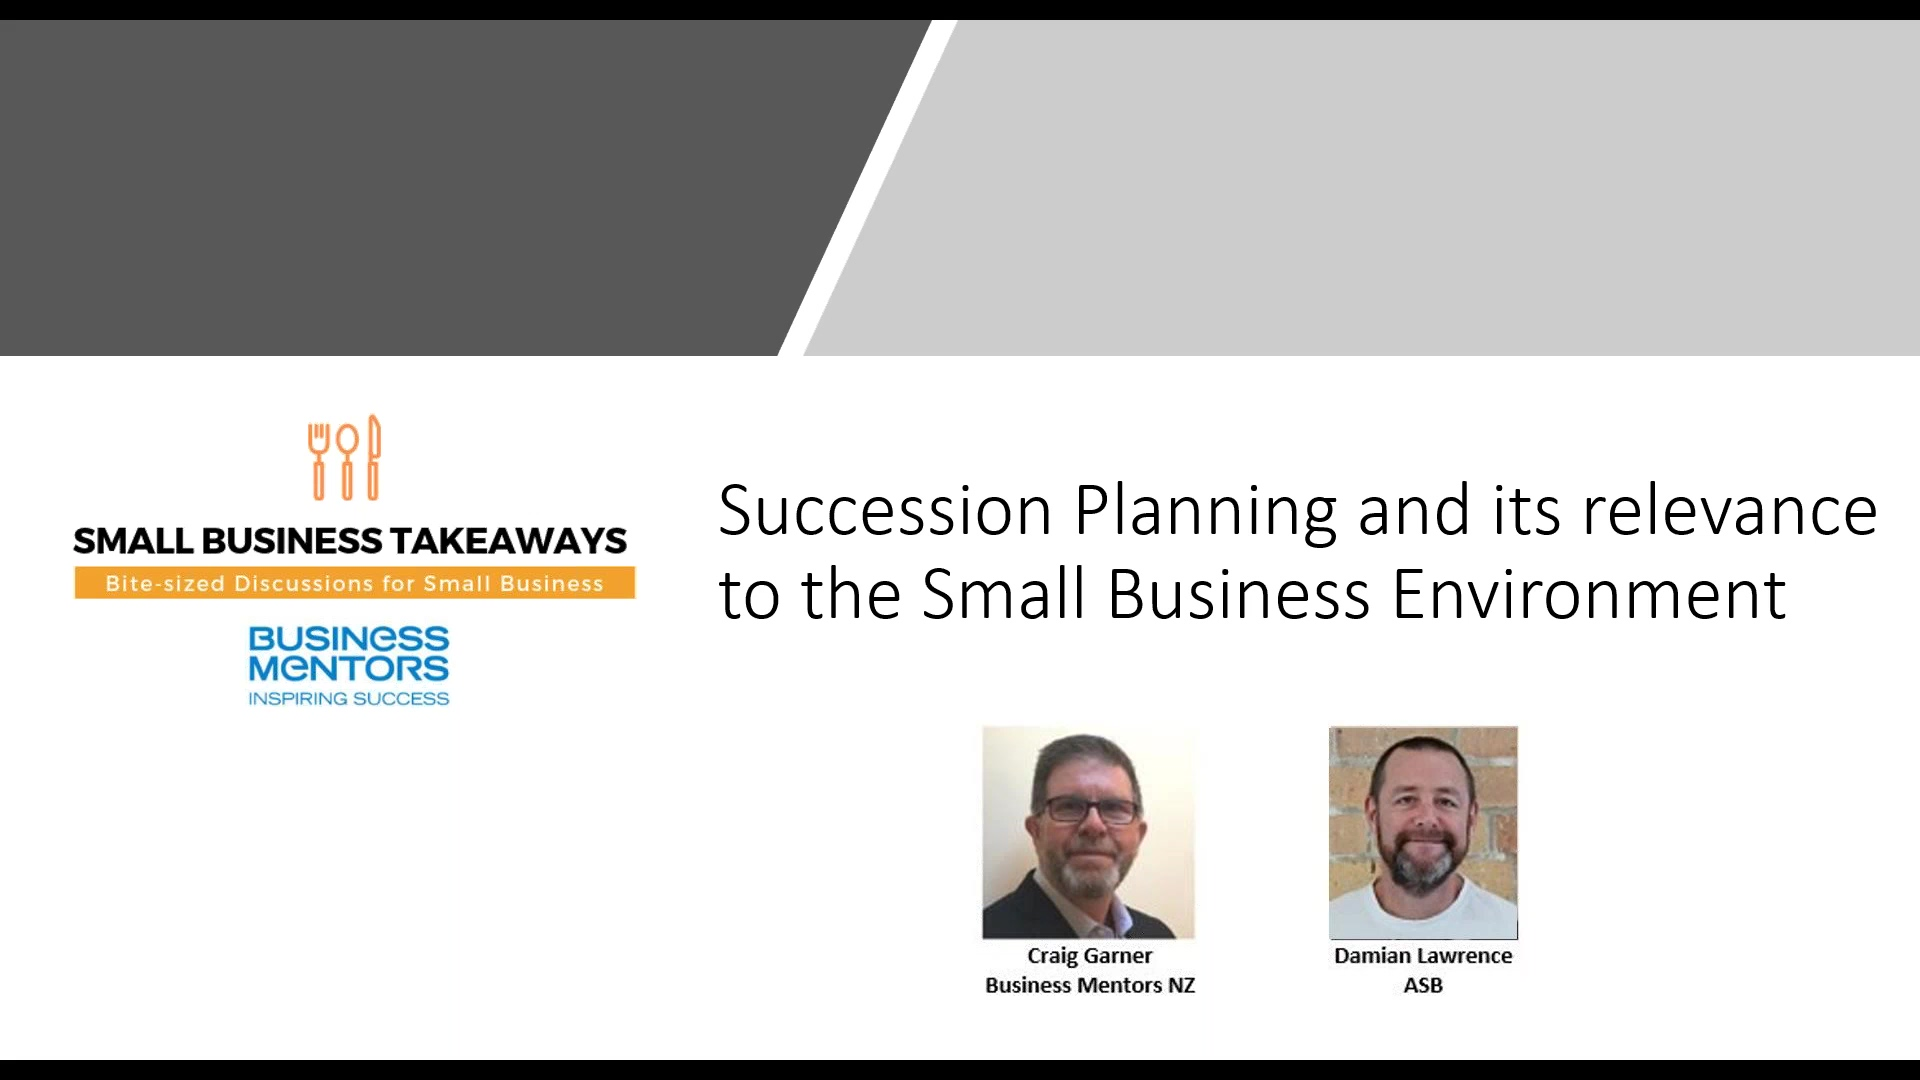 Business Mentors NZ_ Small Business Takeaways - Succession Planning and its relevance to Small Busin